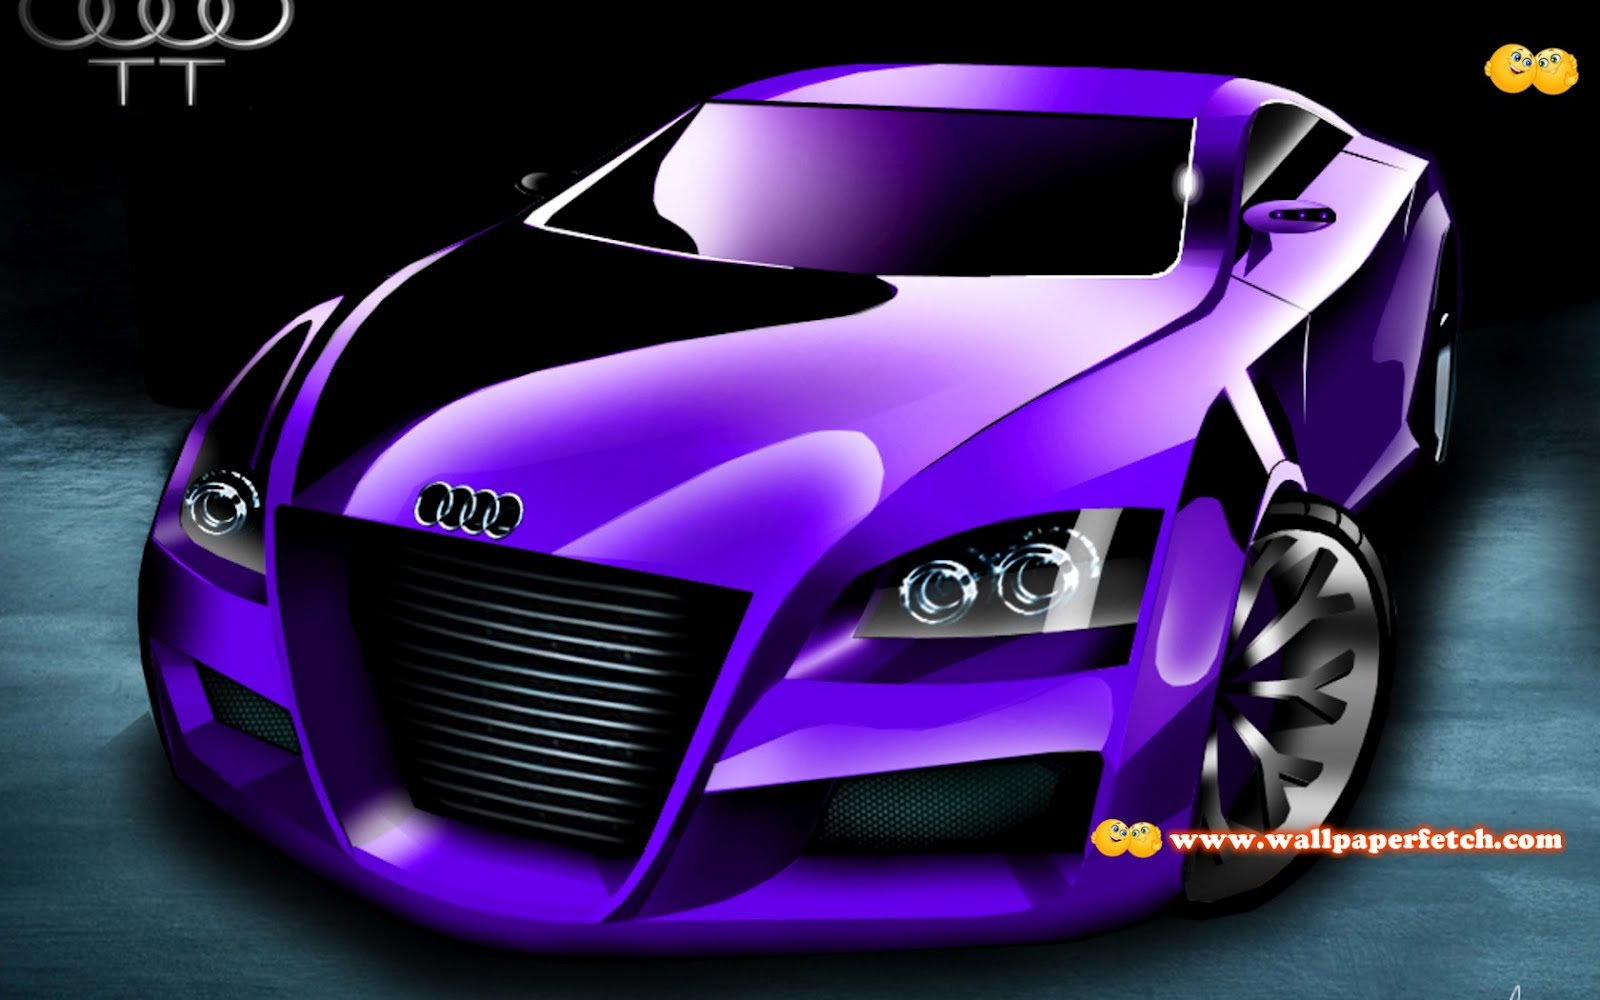 Wallpapermoon Wallpaper Hd Voiture Tuning - Audi car 3d image